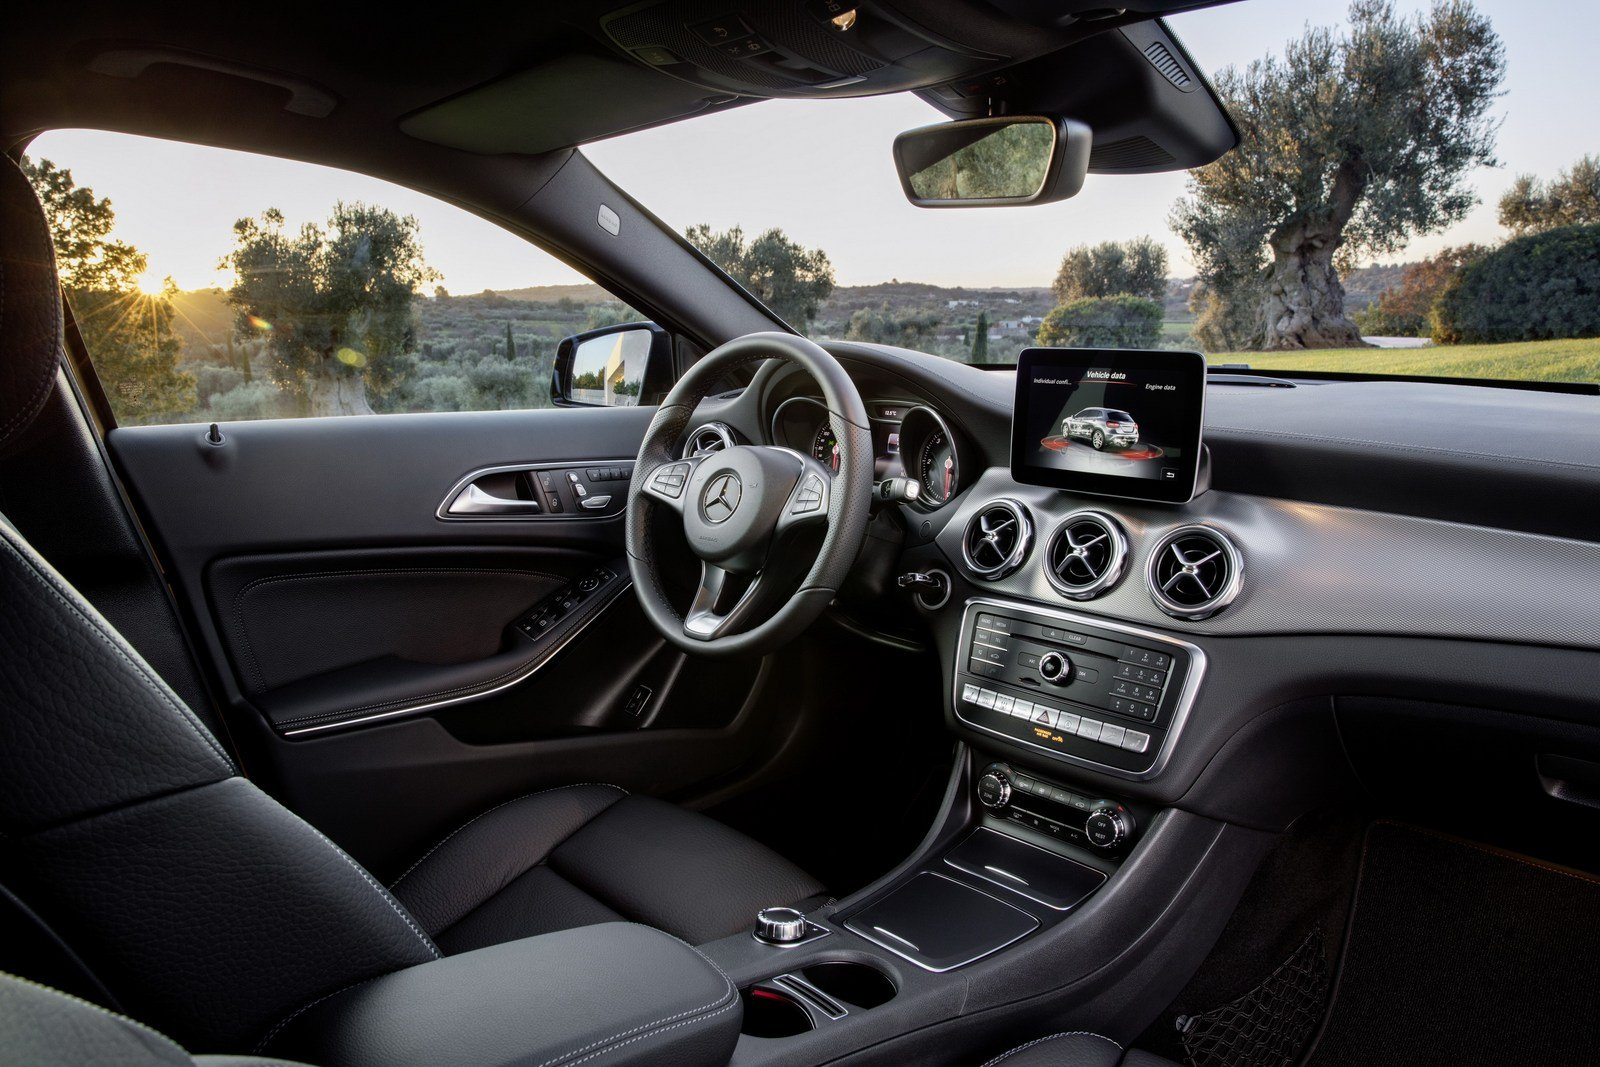 Mercedes GLA 180 Interior